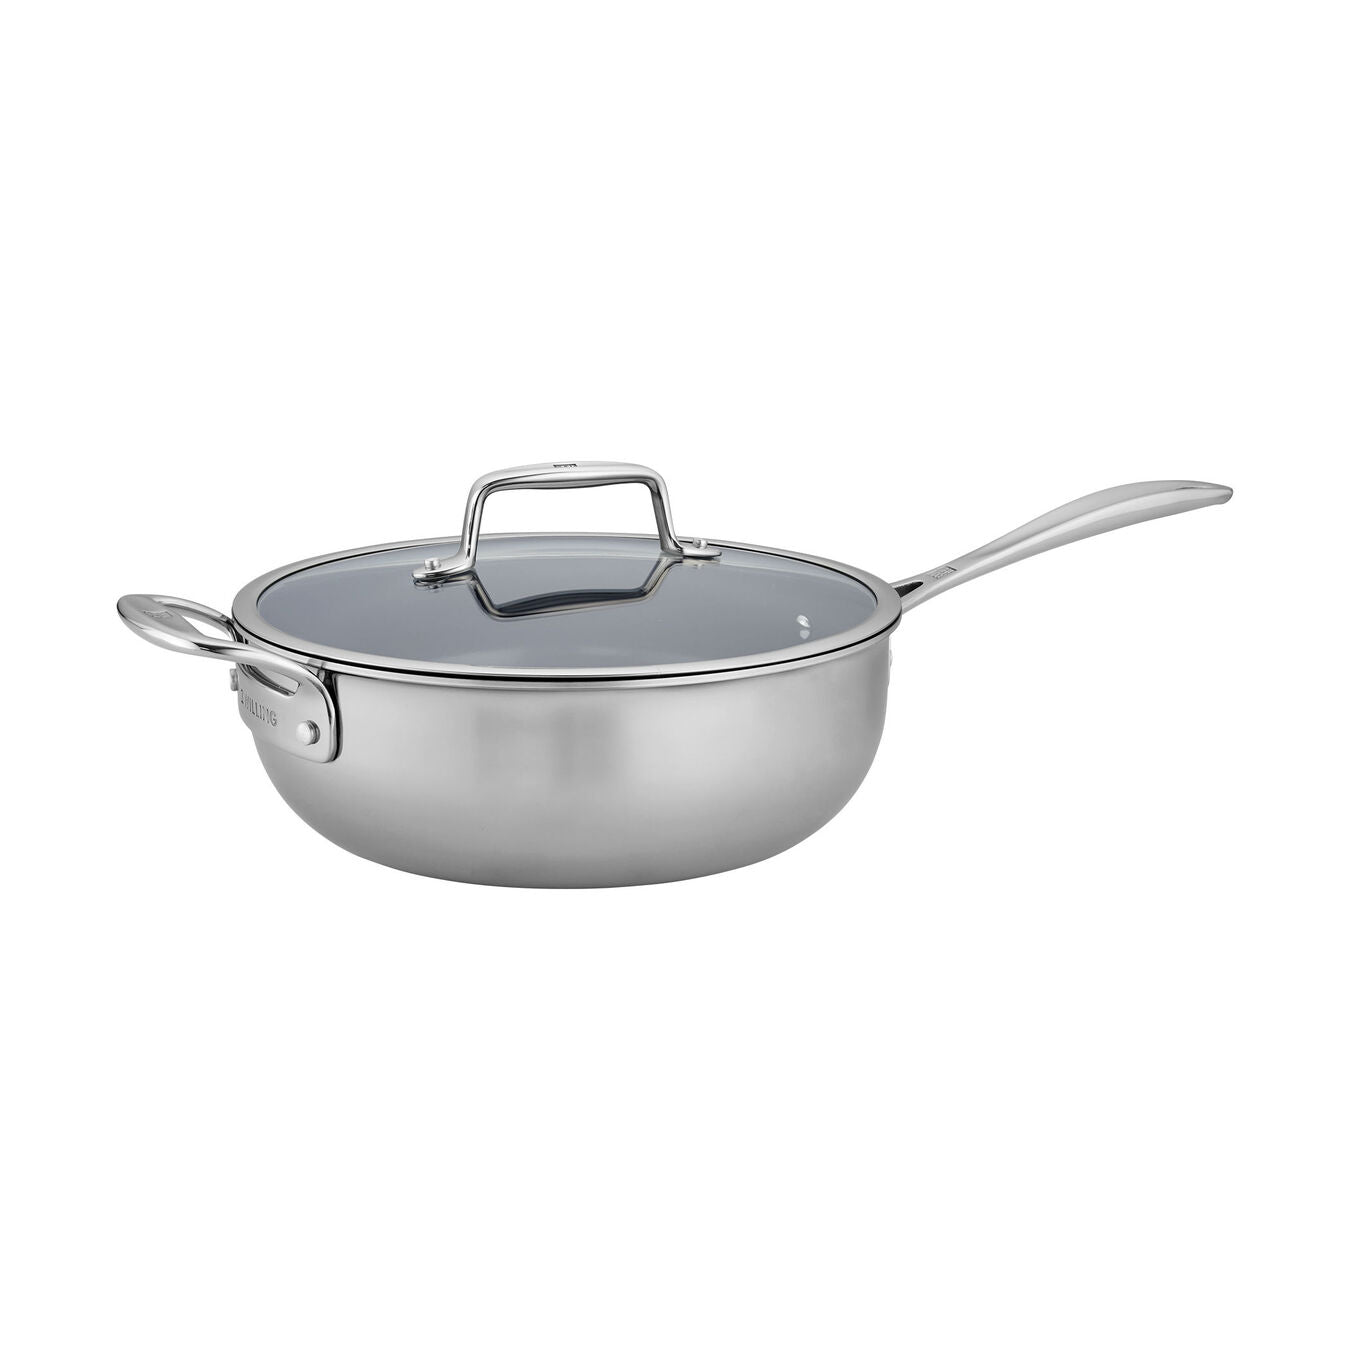 Zwilling CFX Perfect Pan